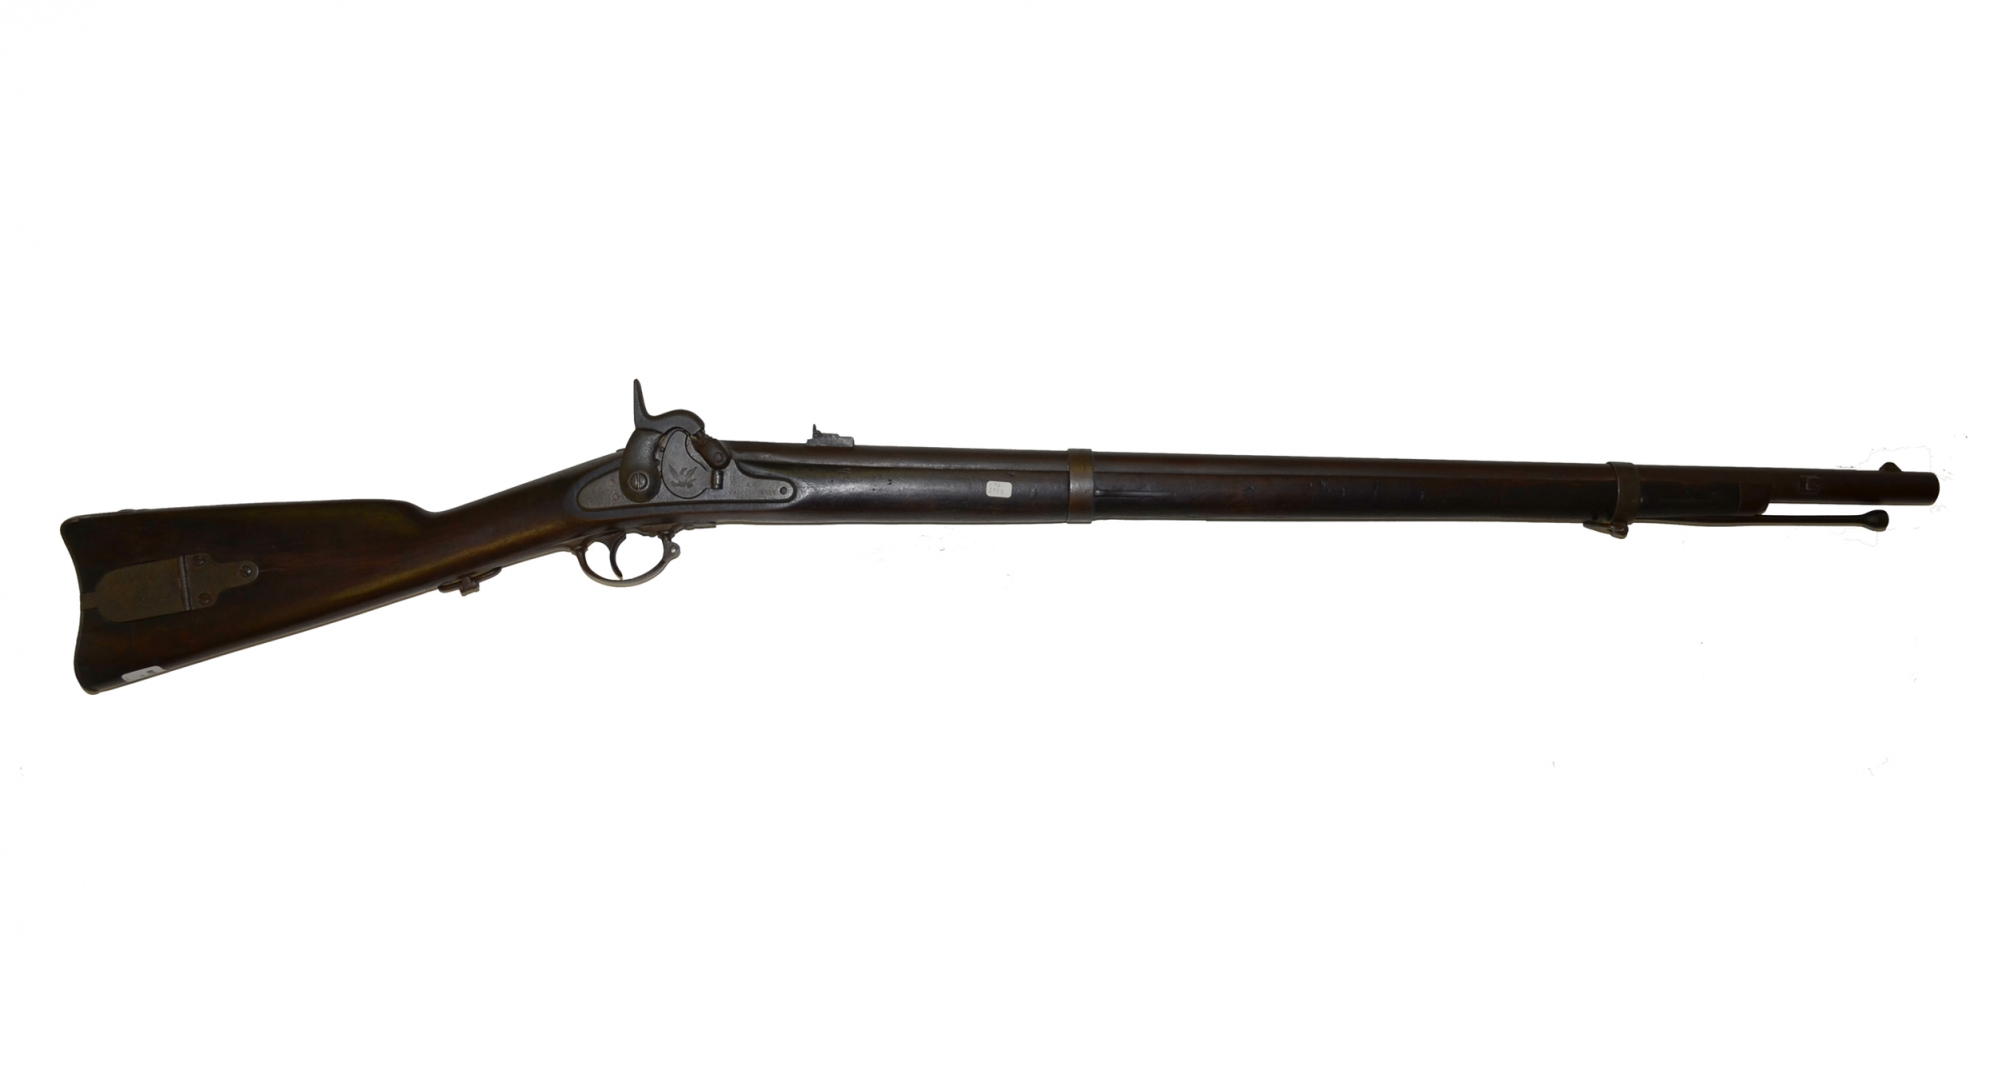 RARE US MODEL 1855 RIFLE BY HARPER'S FERRY DATED 1860 IN UNCLEANED CONDITION